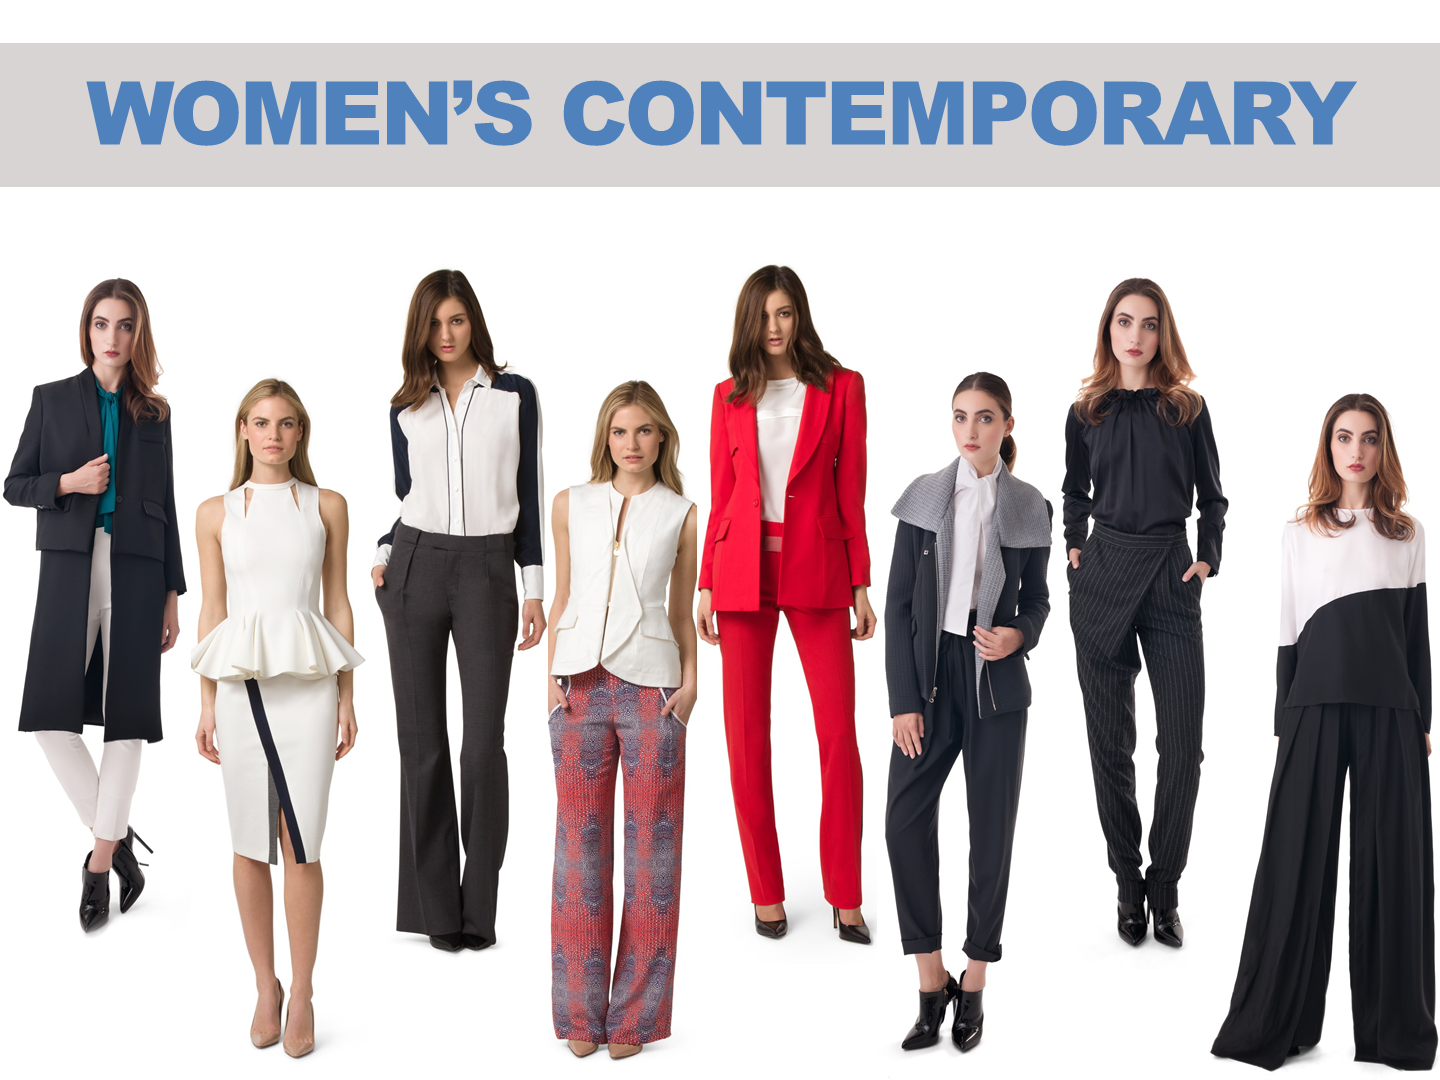 HUMAN B CLIENT Presentation - Women's Contemporary 2.png